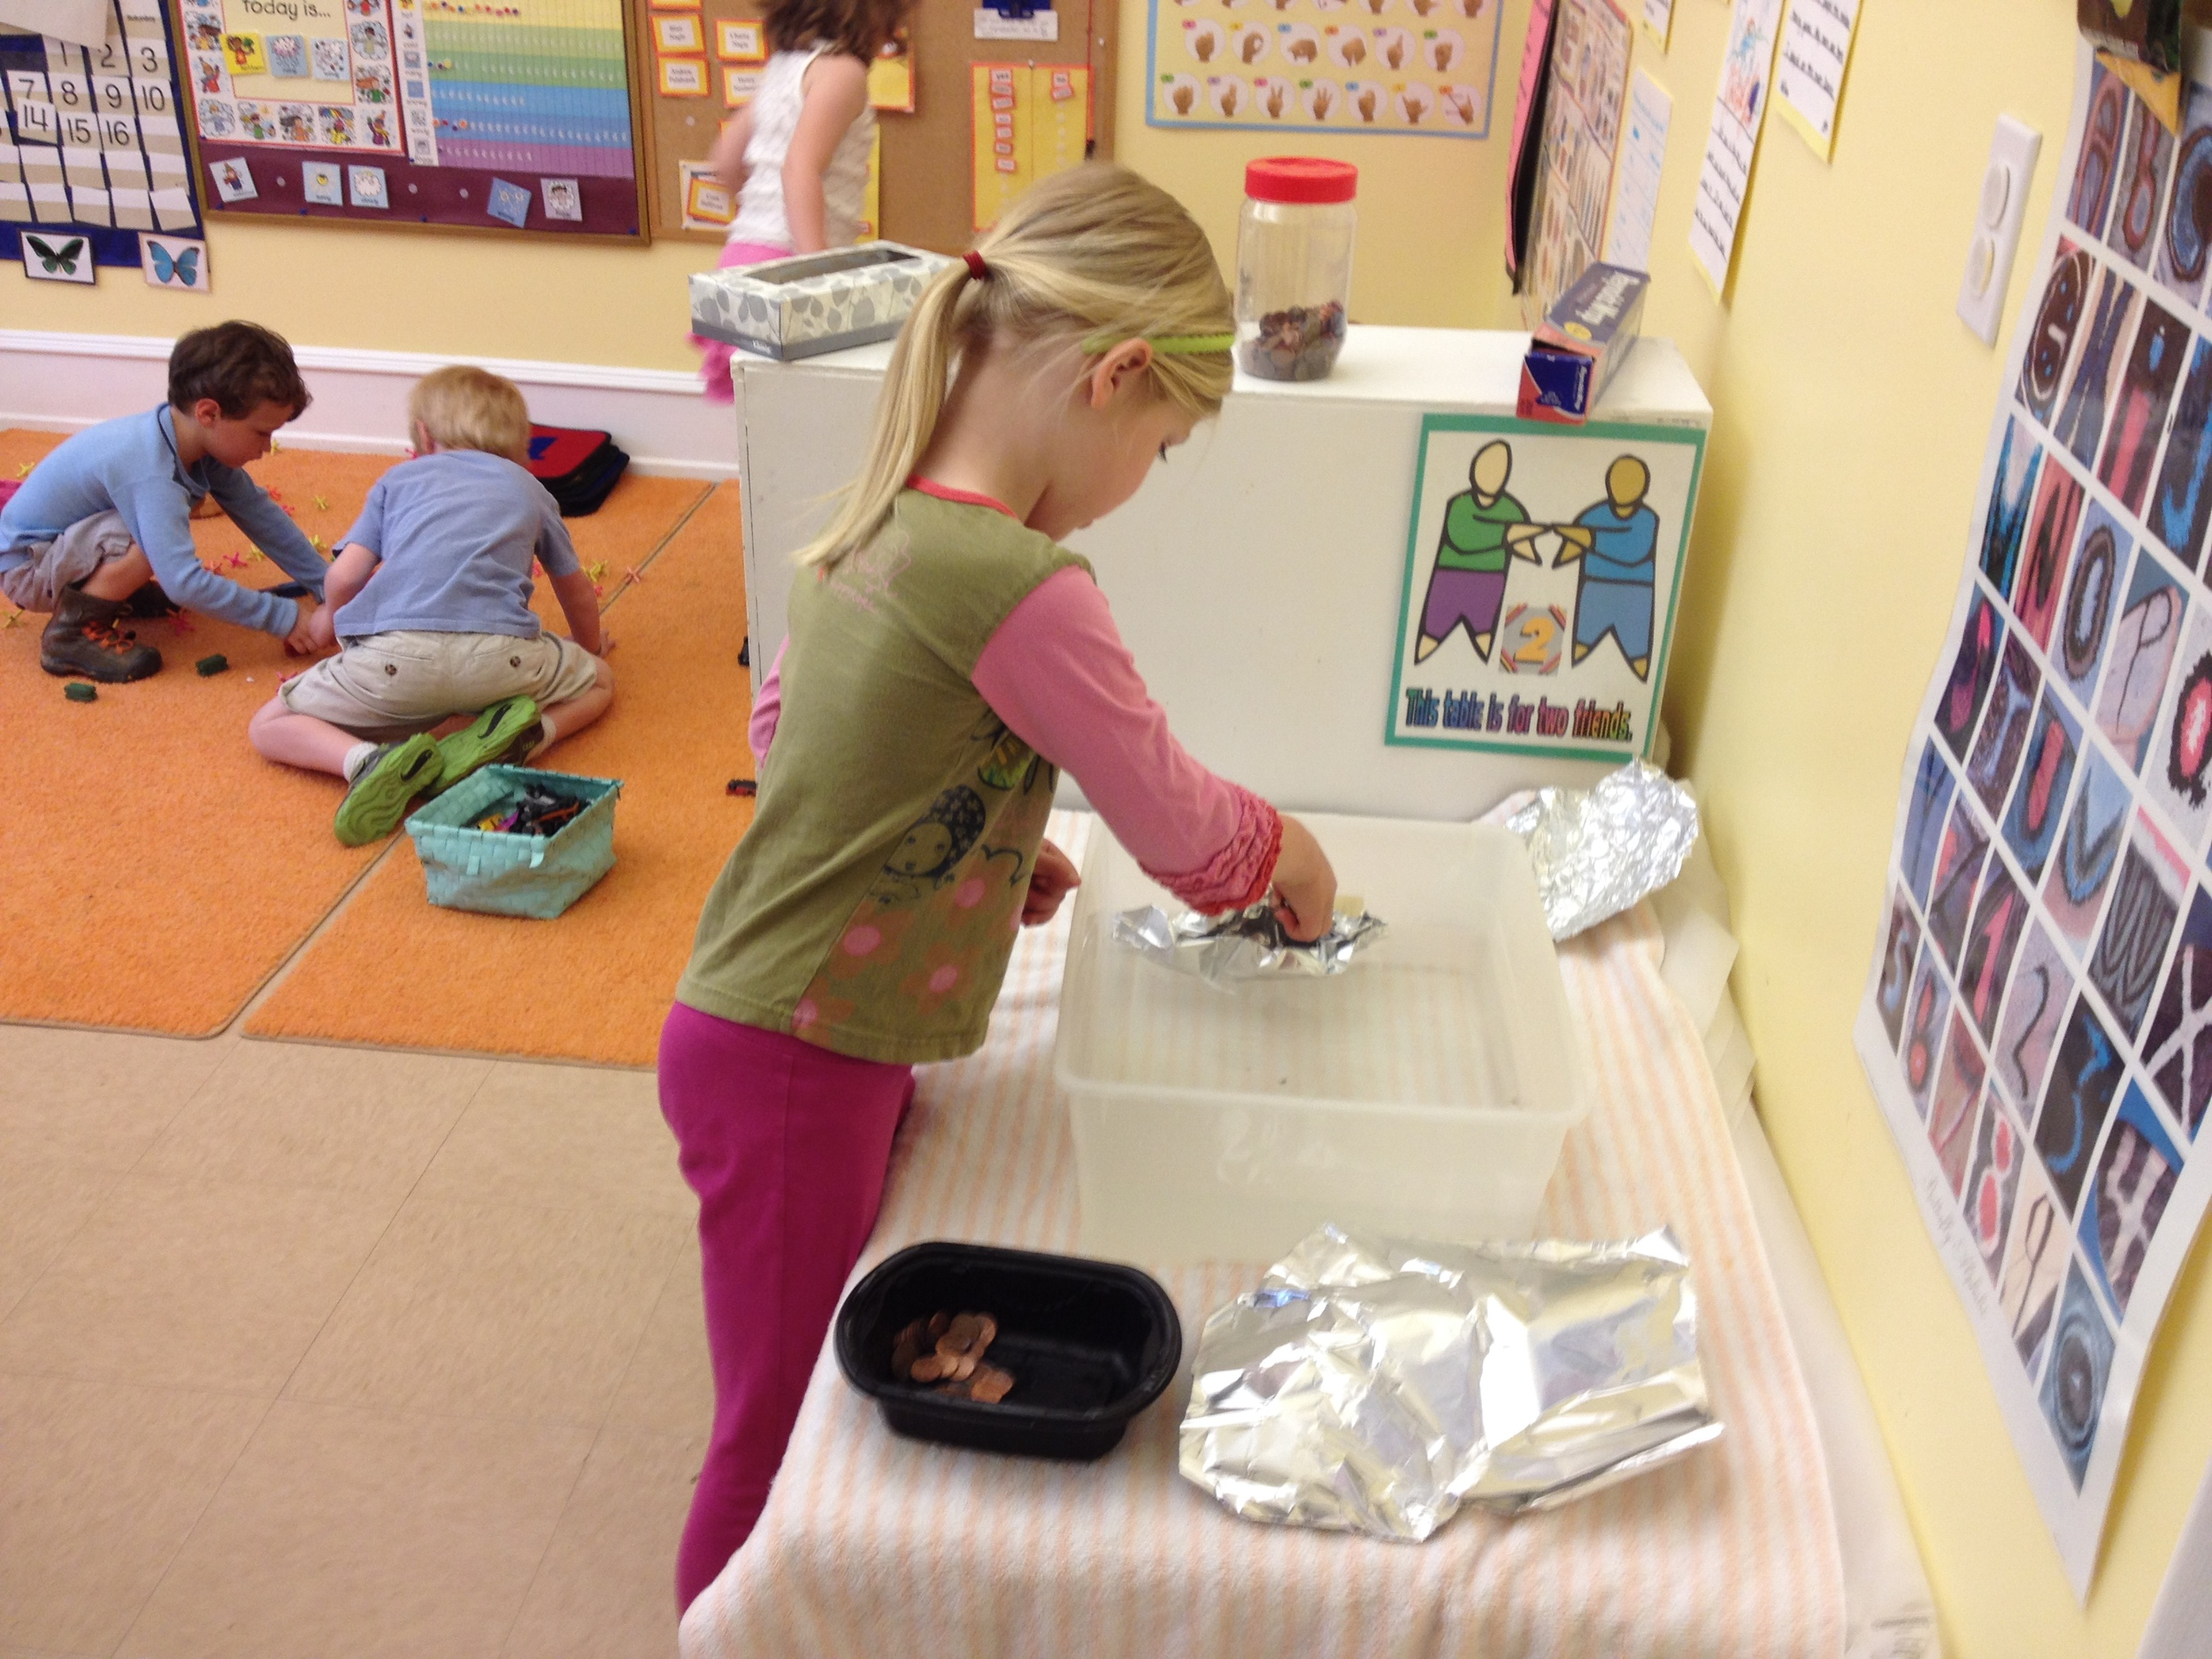 How many pennies can your foil boat hold before it sinks?